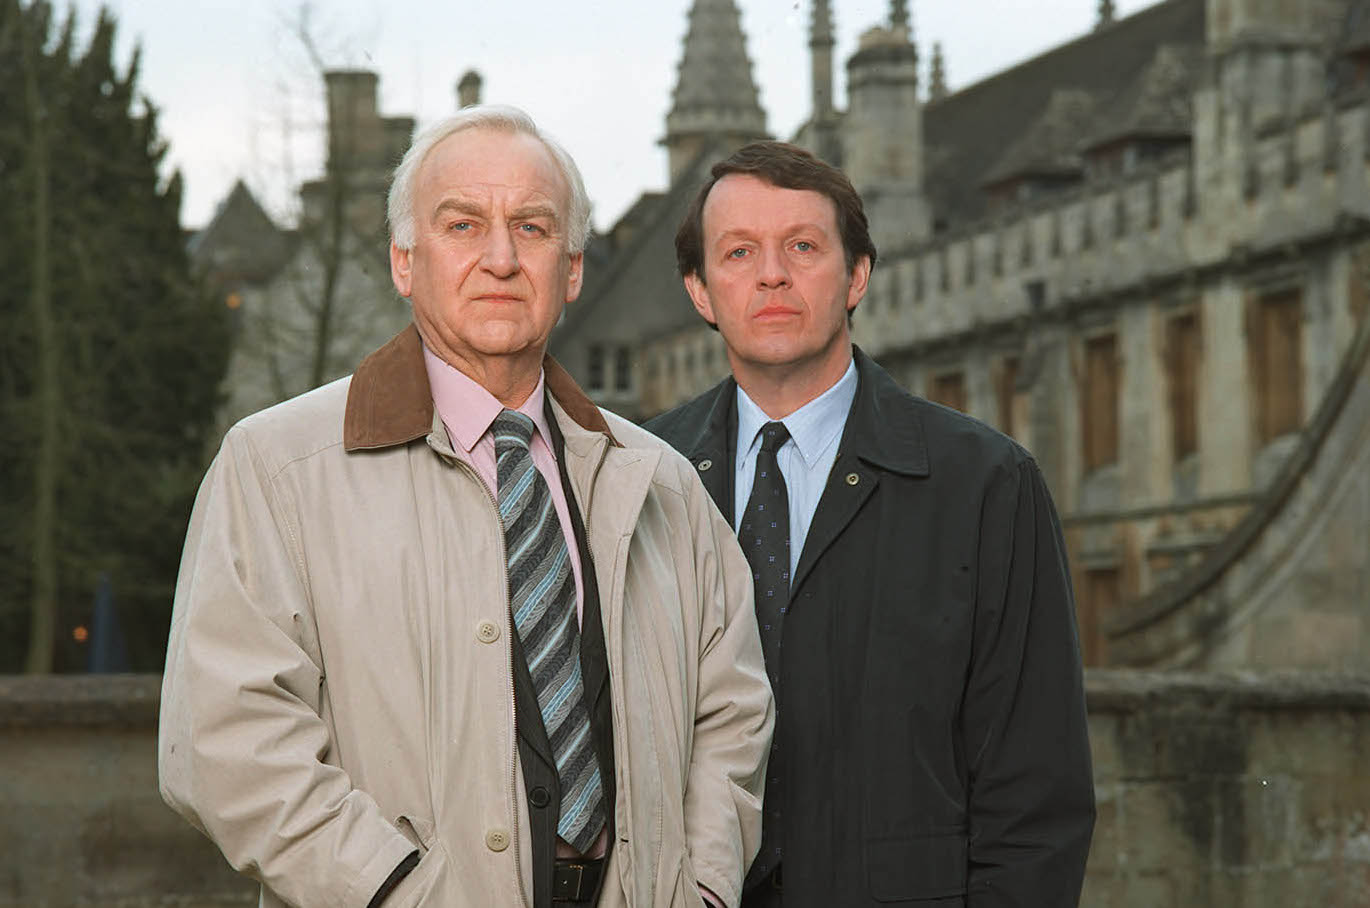 'John Thaw and I were pals – I was used to his ferocious glares': Kevin Whately looks back on Inspector Morse's killer partnership